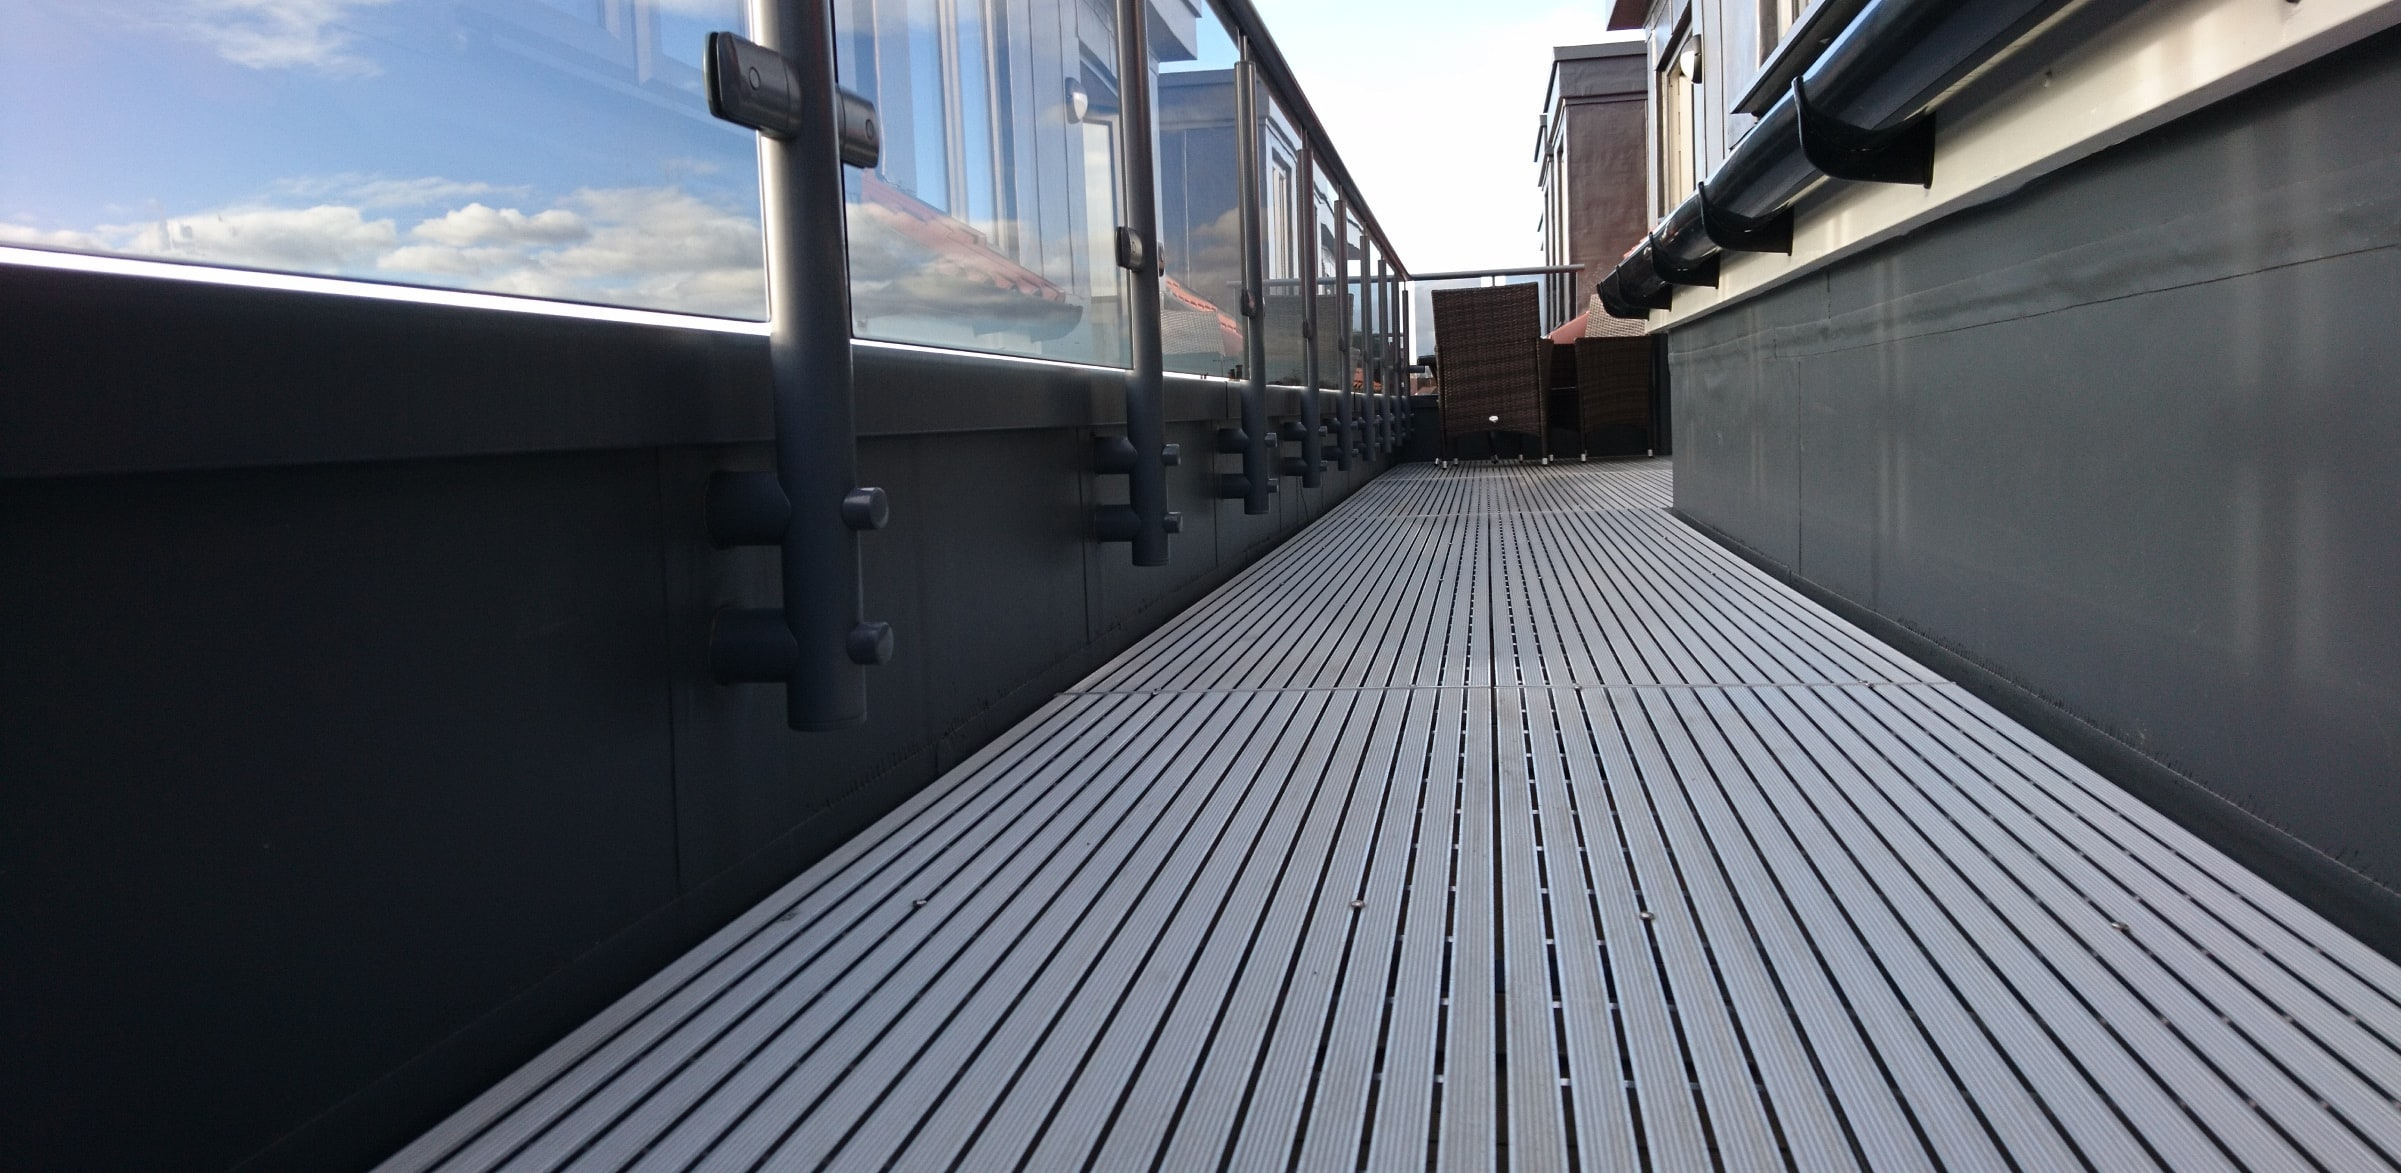 A1 rated decking